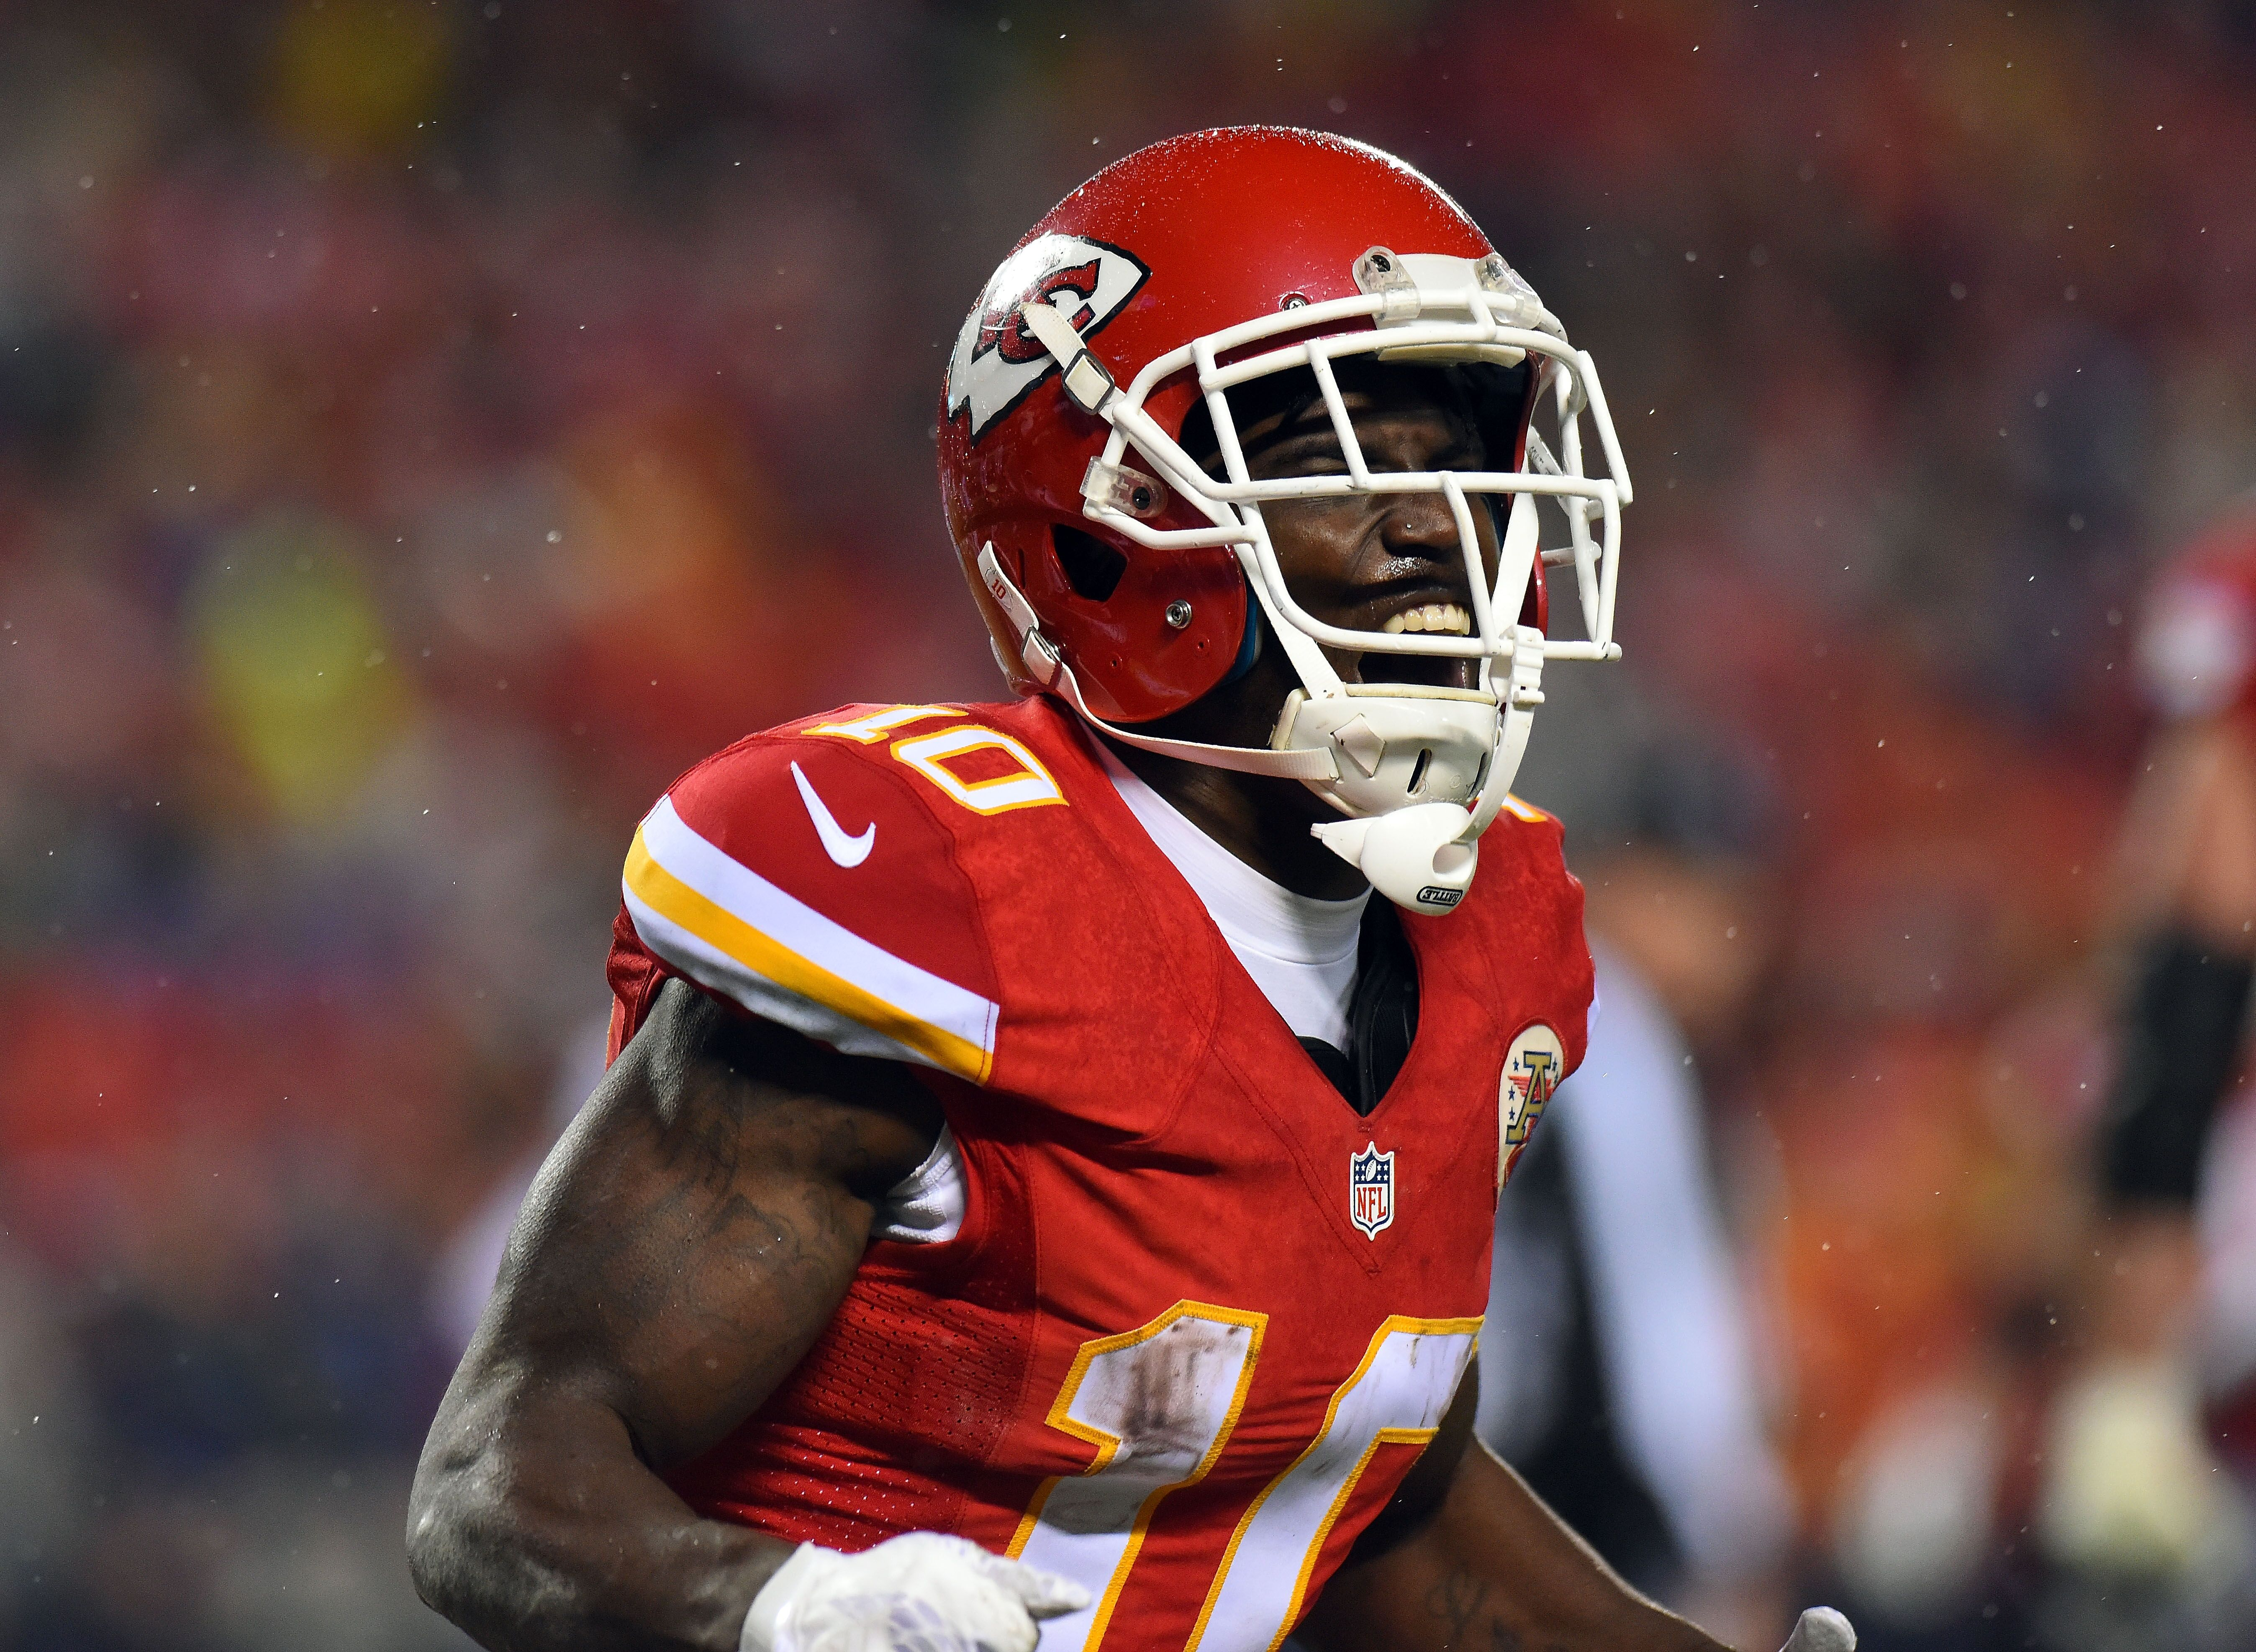 Is Chiefs WR Tyreek Hill a new T Y Hilton or Tavon Austin Page 2